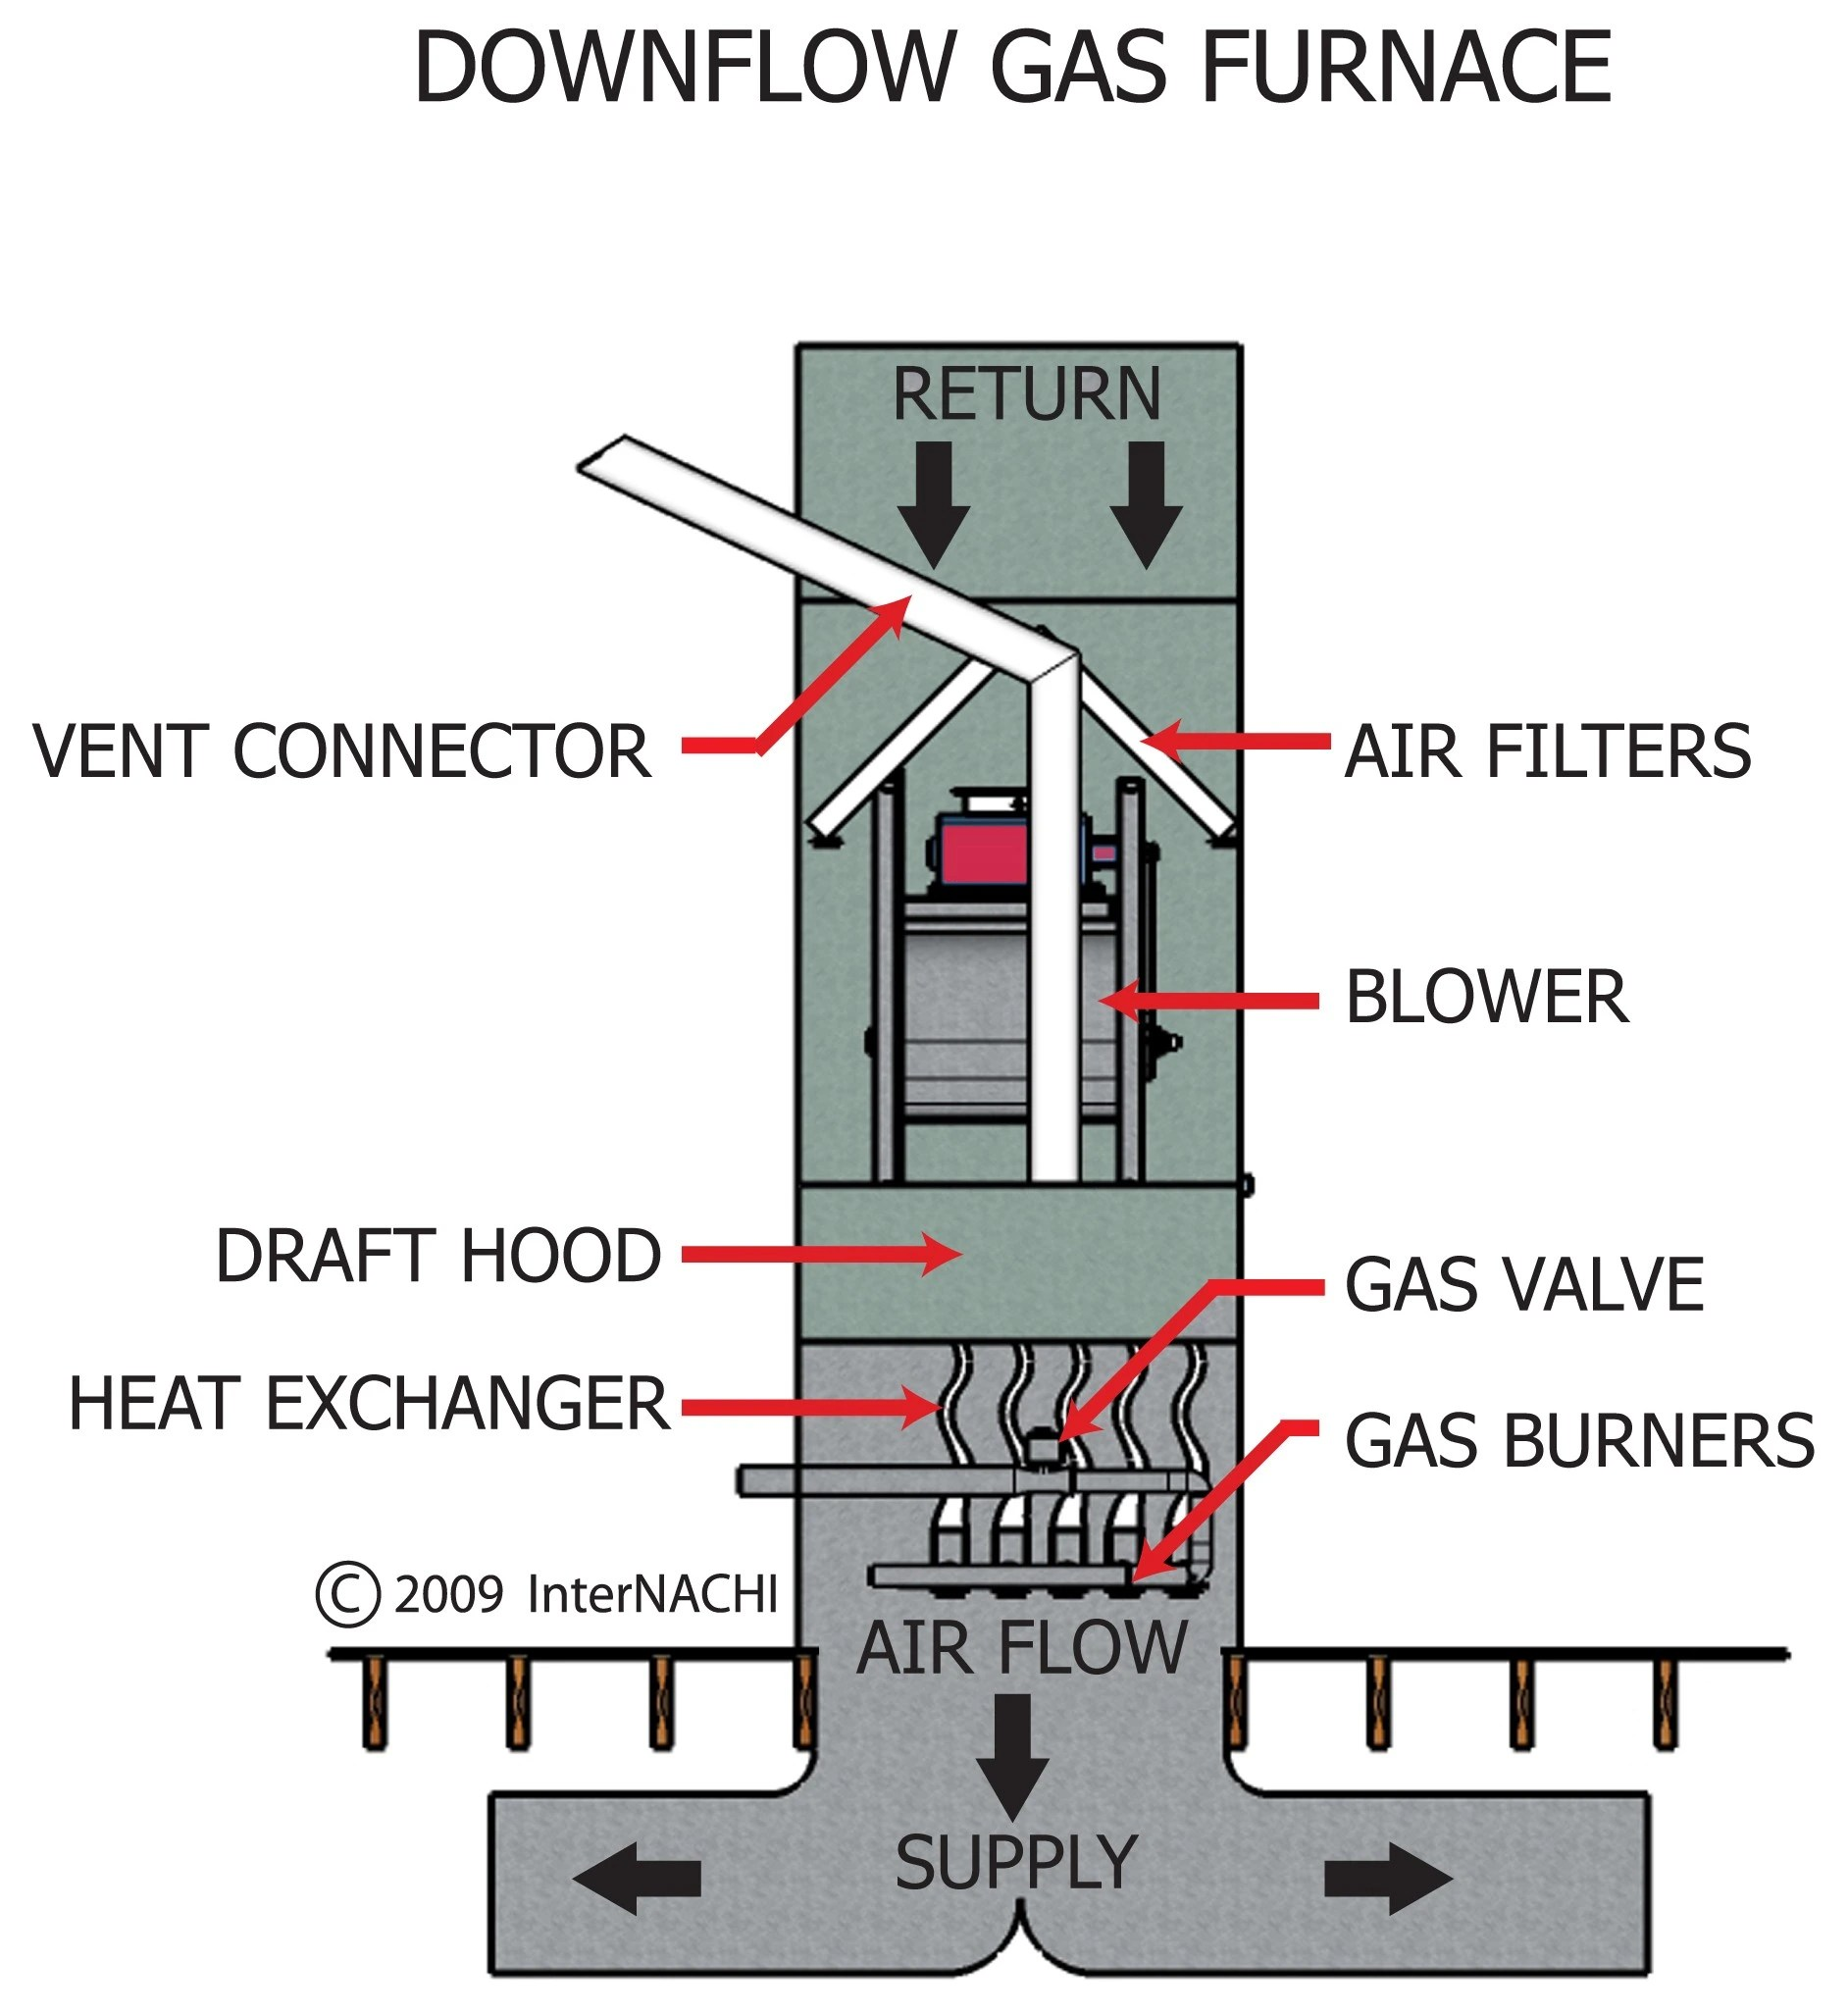 payne furnace wiring diagram thermostat free download lighting spur parts basic gas